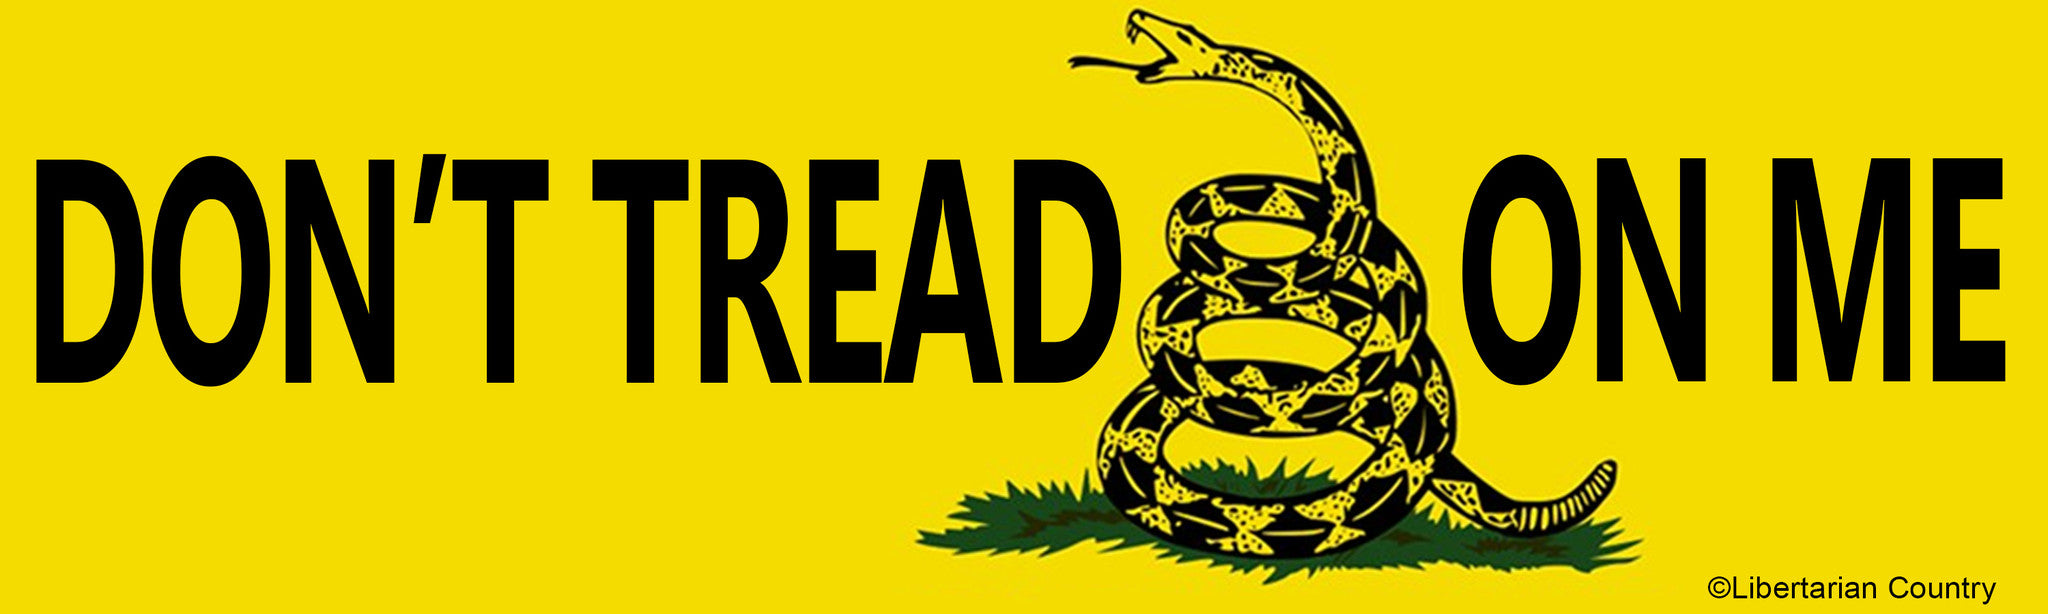 don t tread on me bumper sticker libertarian country